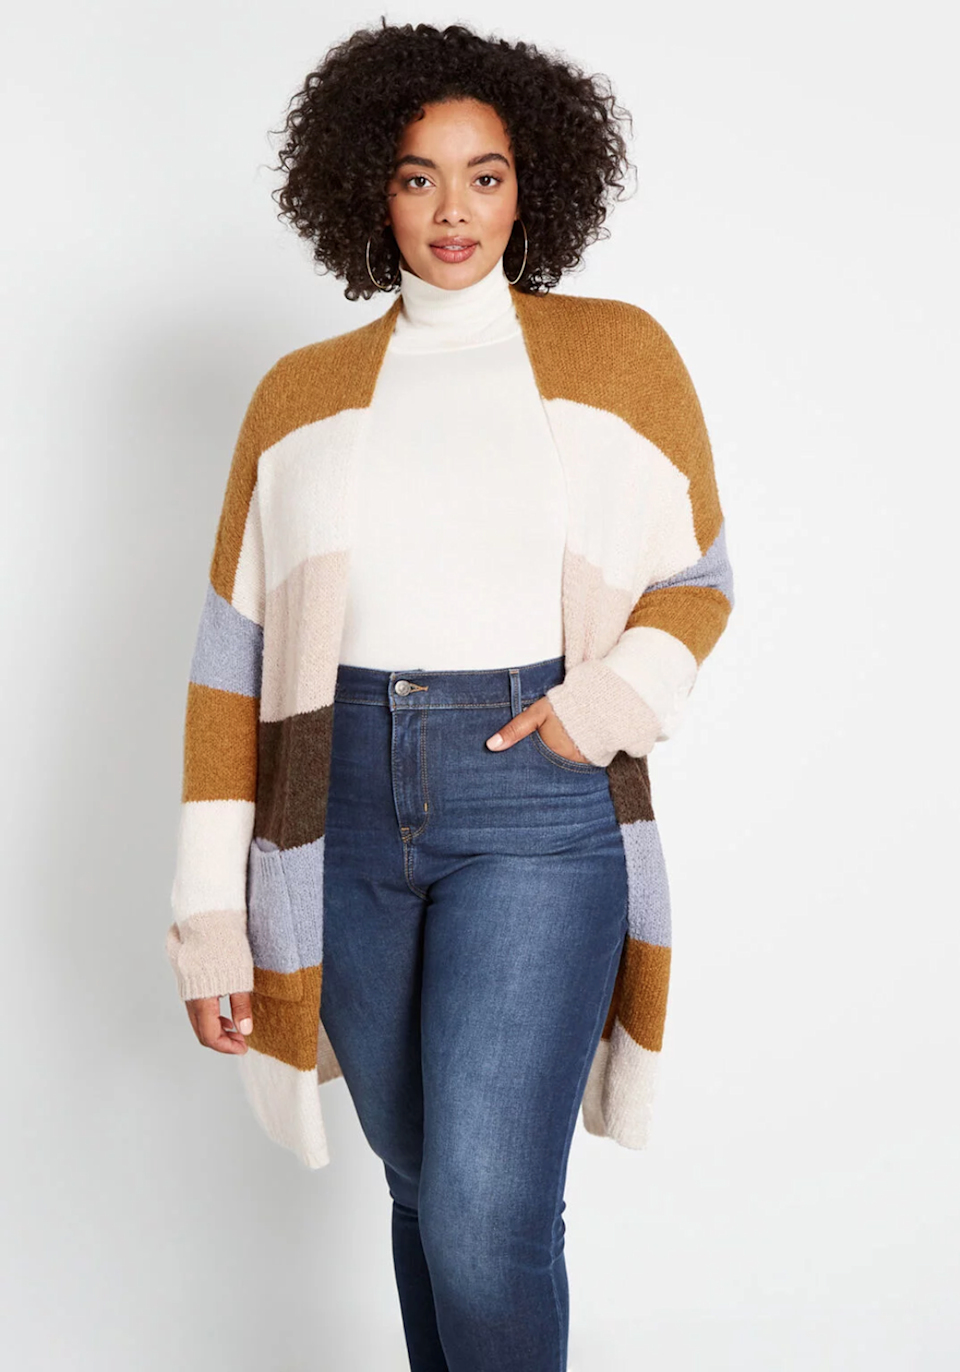 """<h3><a href=""""https://www.modcloth.com/"""" rel=""""nofollow noopener"""" target=""""_blank"""" data-ylk=""""slk:Modcloth"""" class=""""link rapid-noclick-resp"""">Modcloth</a></h3><br><strong>Dates:</strong> Daily<br><strong>Sale: </strong>The vintage-inspired retailer is offering daily deals in the lead-up to Black Friday. Currently you can get 20% off everything, 30% off $100 orders, and 40% off orders of $200 and more. Be sure to check their <a href=""""https://www.modcloth.com/shop/daily-deals"""" rel=""""nofollow noopener"""" target=""""_blank"""" data-ylk=""""slk:handy-dandy landing page"""" class=""""link rapid-noclick-resp"""">handy-dandy landing page</a> to find even more deals, like this cool color-blocked coatigan for a marked-down $25. <br><strong>Promo code: </strong>None<br><br><strong>ModCloth</strong> Blissfully Bundled Oversized Cardigan, $, available at <a href=""""https://www.modcloth.com/shop/tops/blissfully-bundled-oversized-cardigan-in-ivory-multi-striped/166711.html"""" rel=""""nofollow noopener"""" target=""""_blank"""" data-ylk=""""slk:ModCloth"""" class=""""link rapid-noclick-resp"""">ModCloth</a>"""